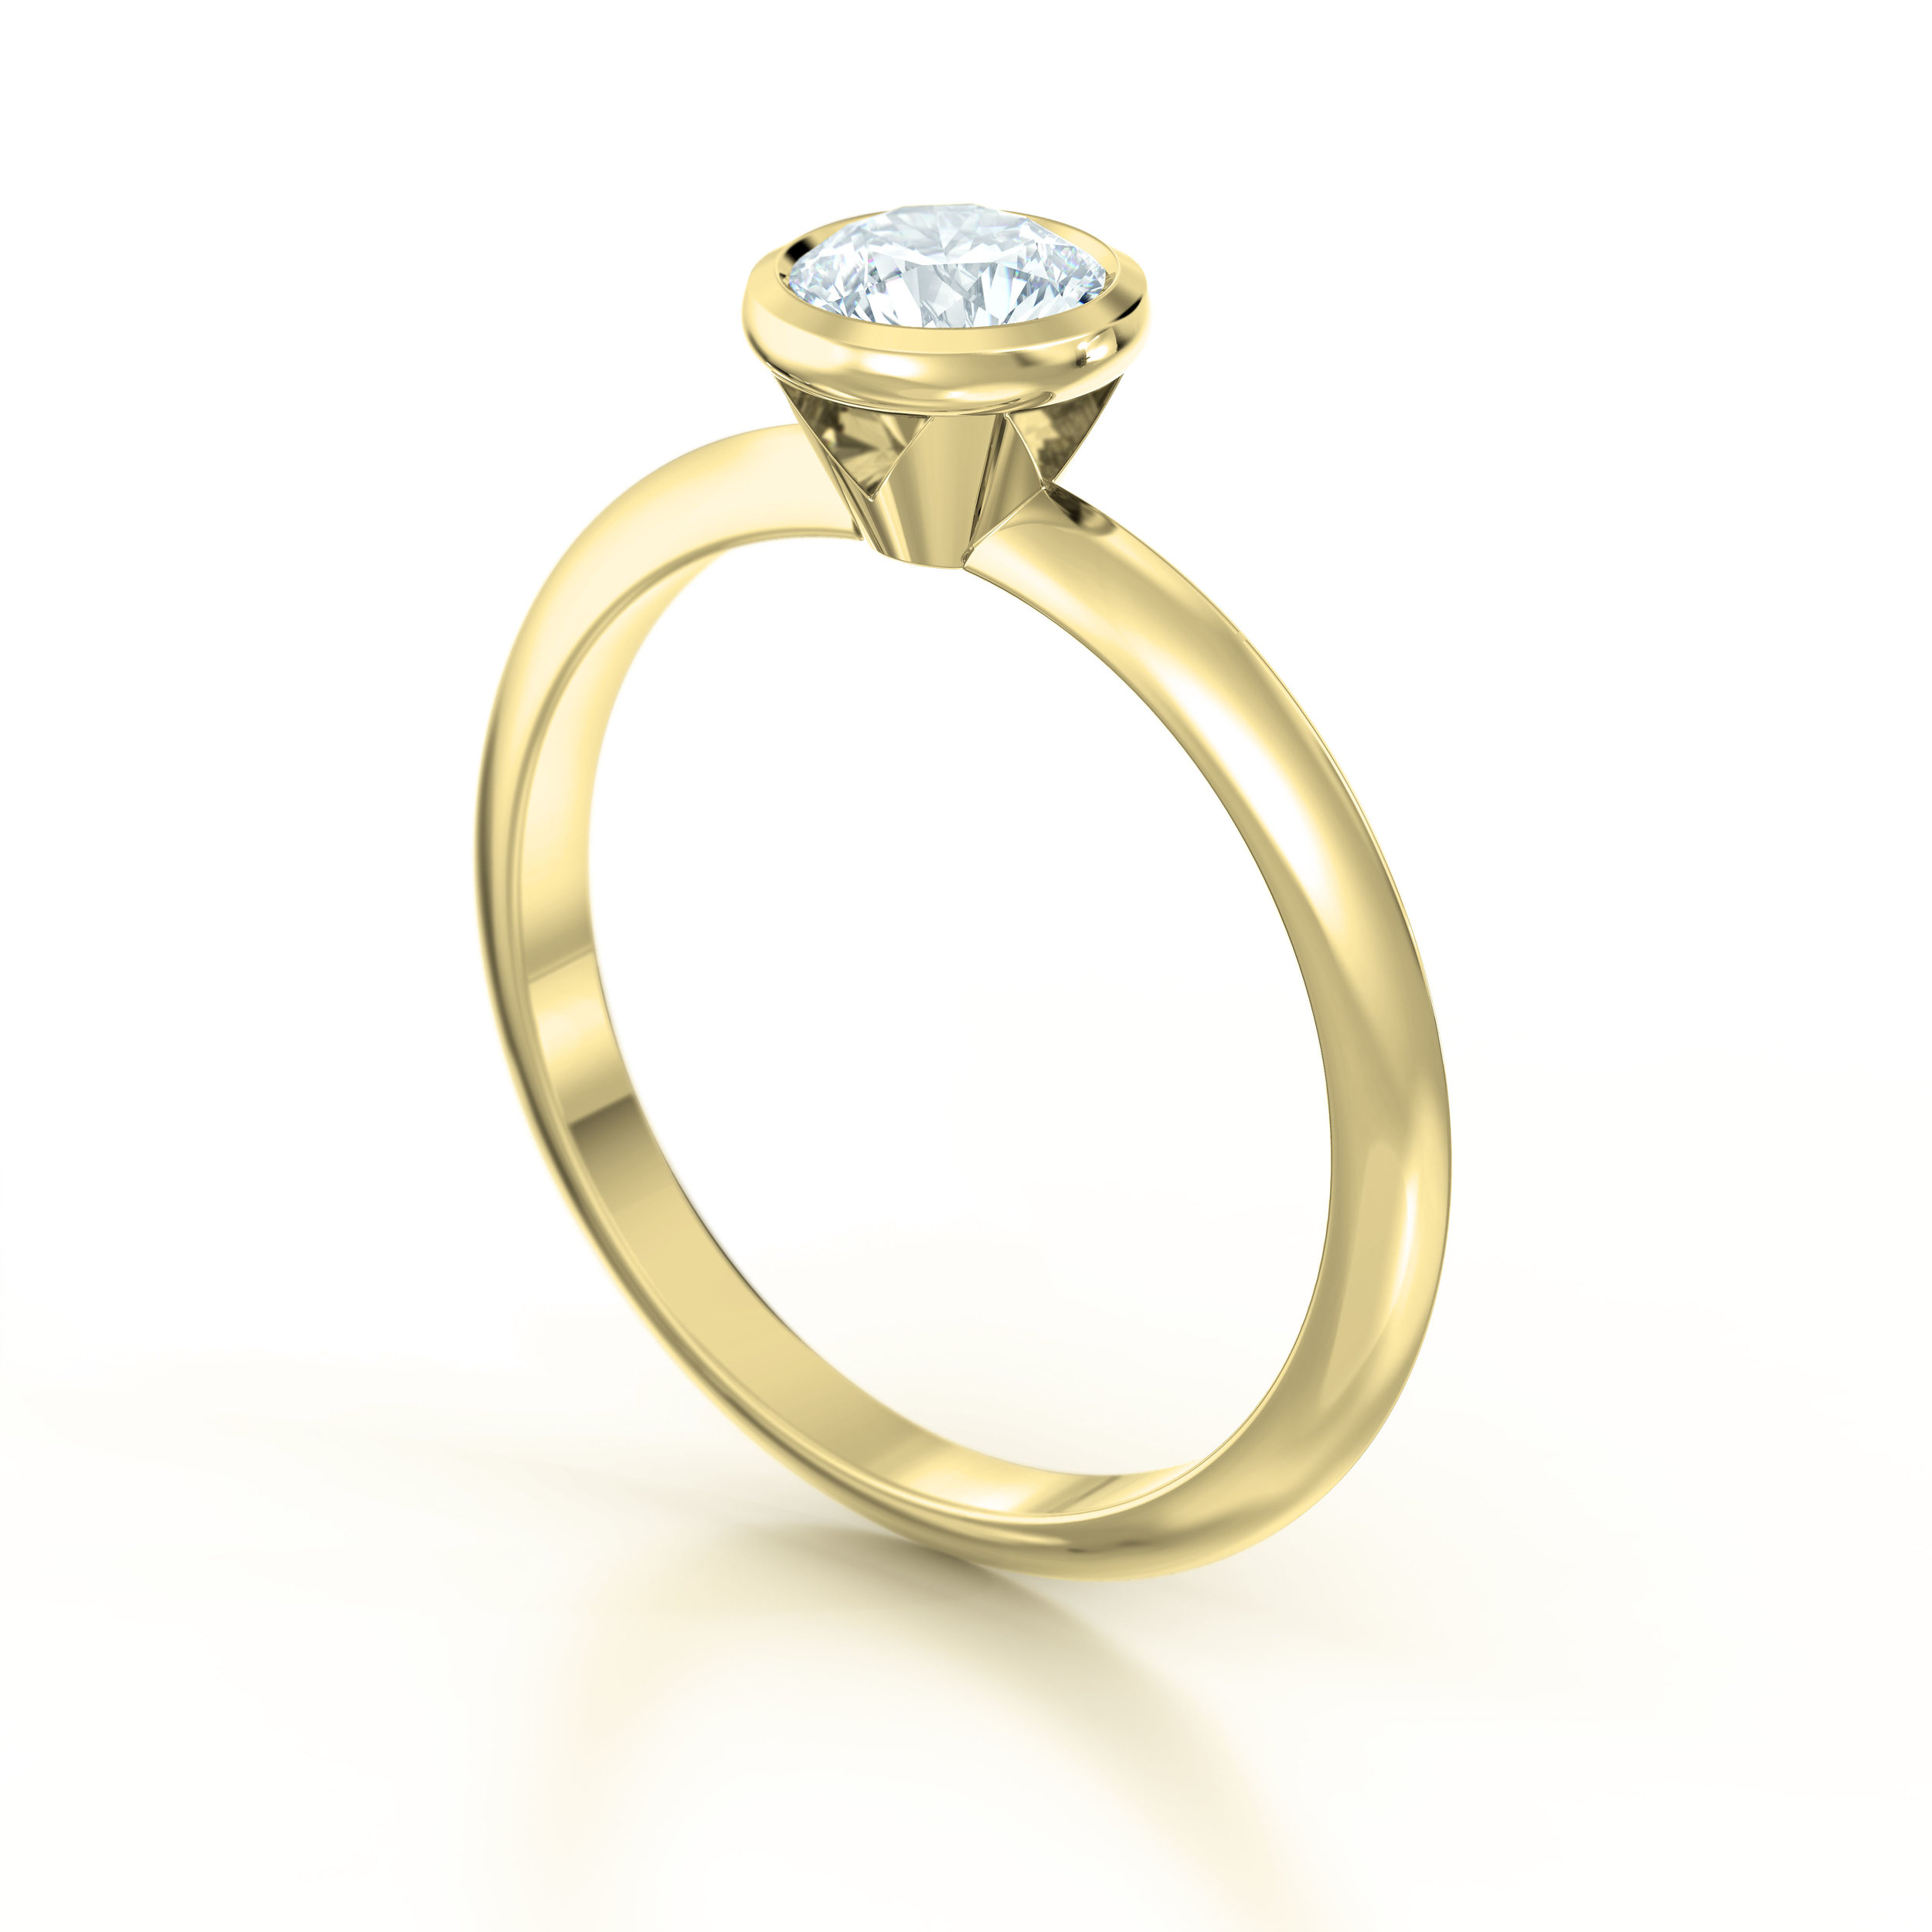 Rub Over Yellow Gold Solitaire Engagement Ring | Hatton Garden